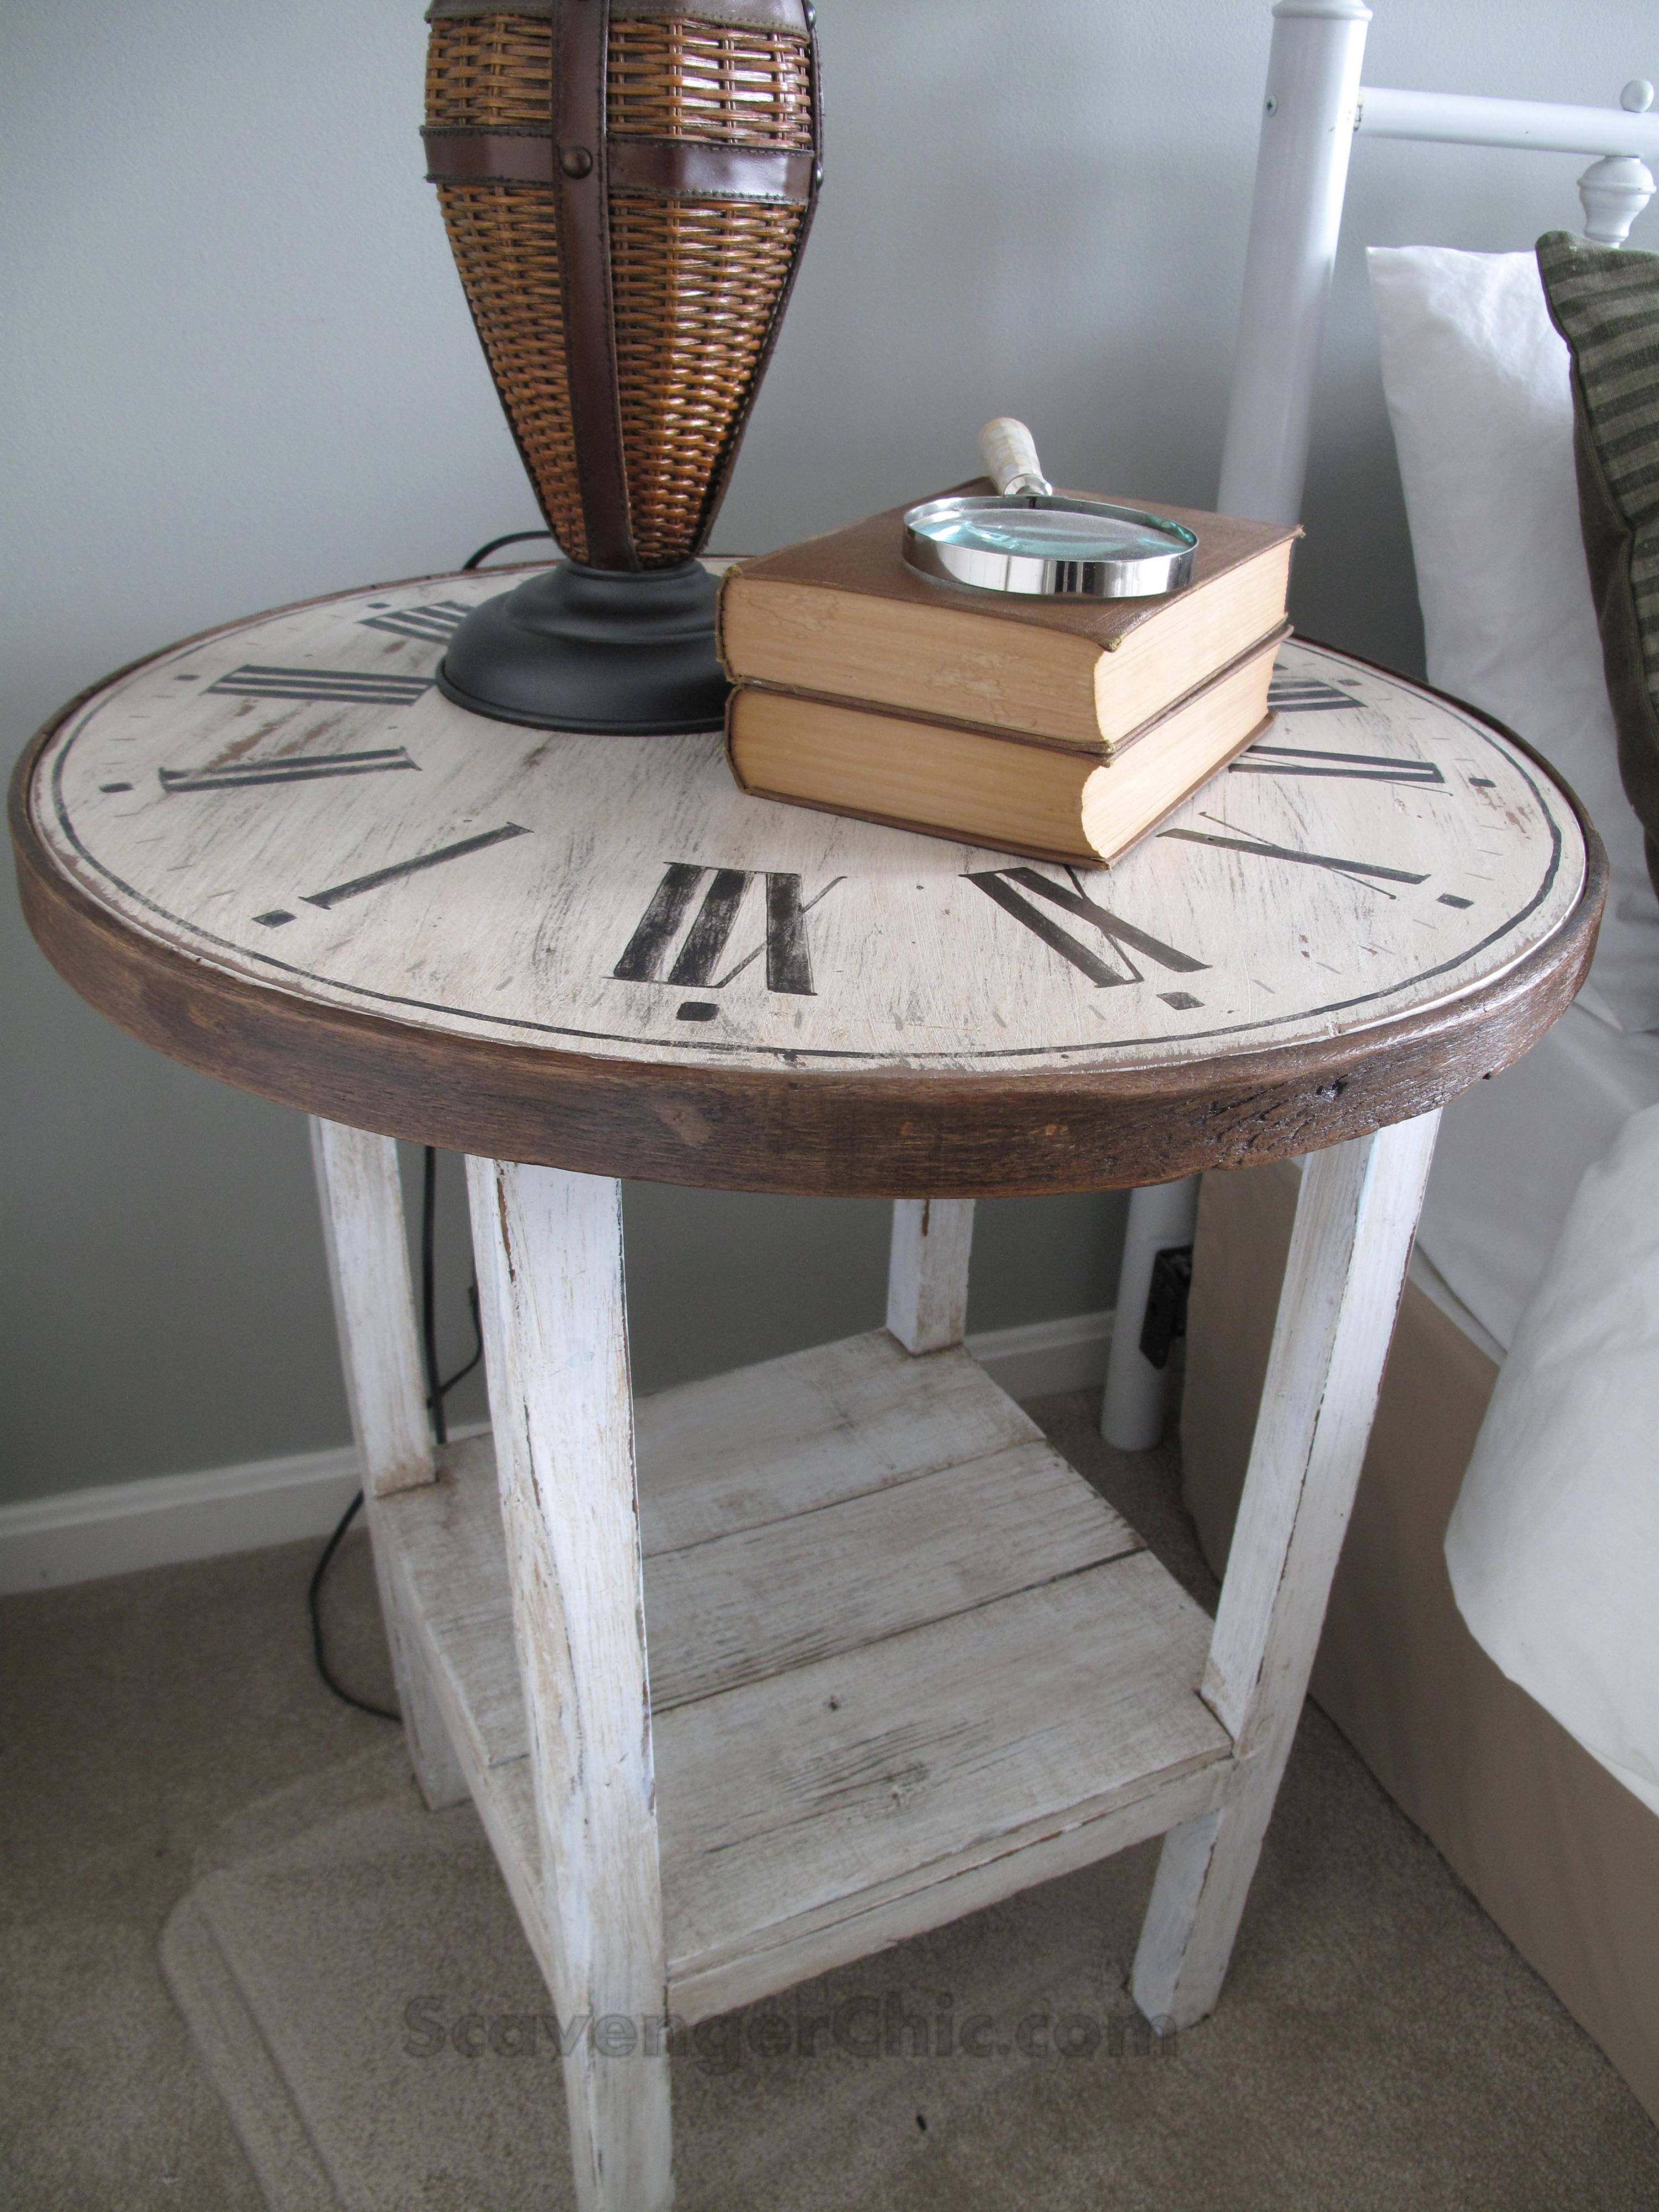 clock table from a flea market find diy table makeover on trends minimalist diy wooden furniture that impressing your living room furniture treatment id=84151